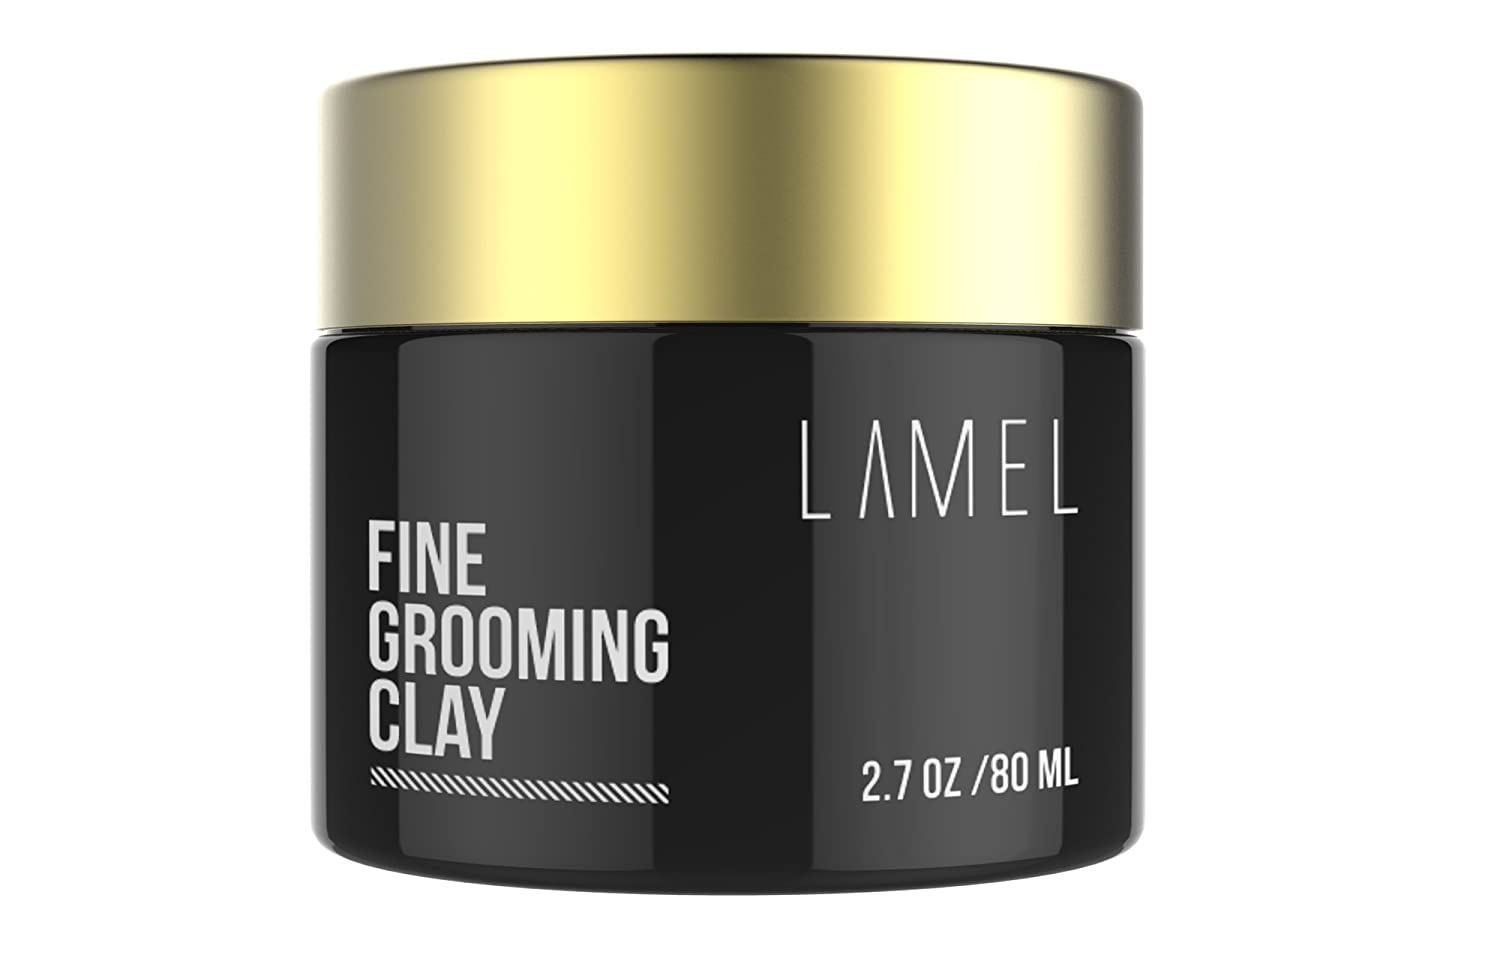 Amazon.com: Best Molding Creme For Strong Hold Matte Finish   No Shine Hair  Product For Textured Modern Hairstyles   Lamel Styling Clay For All Hair  Types ...